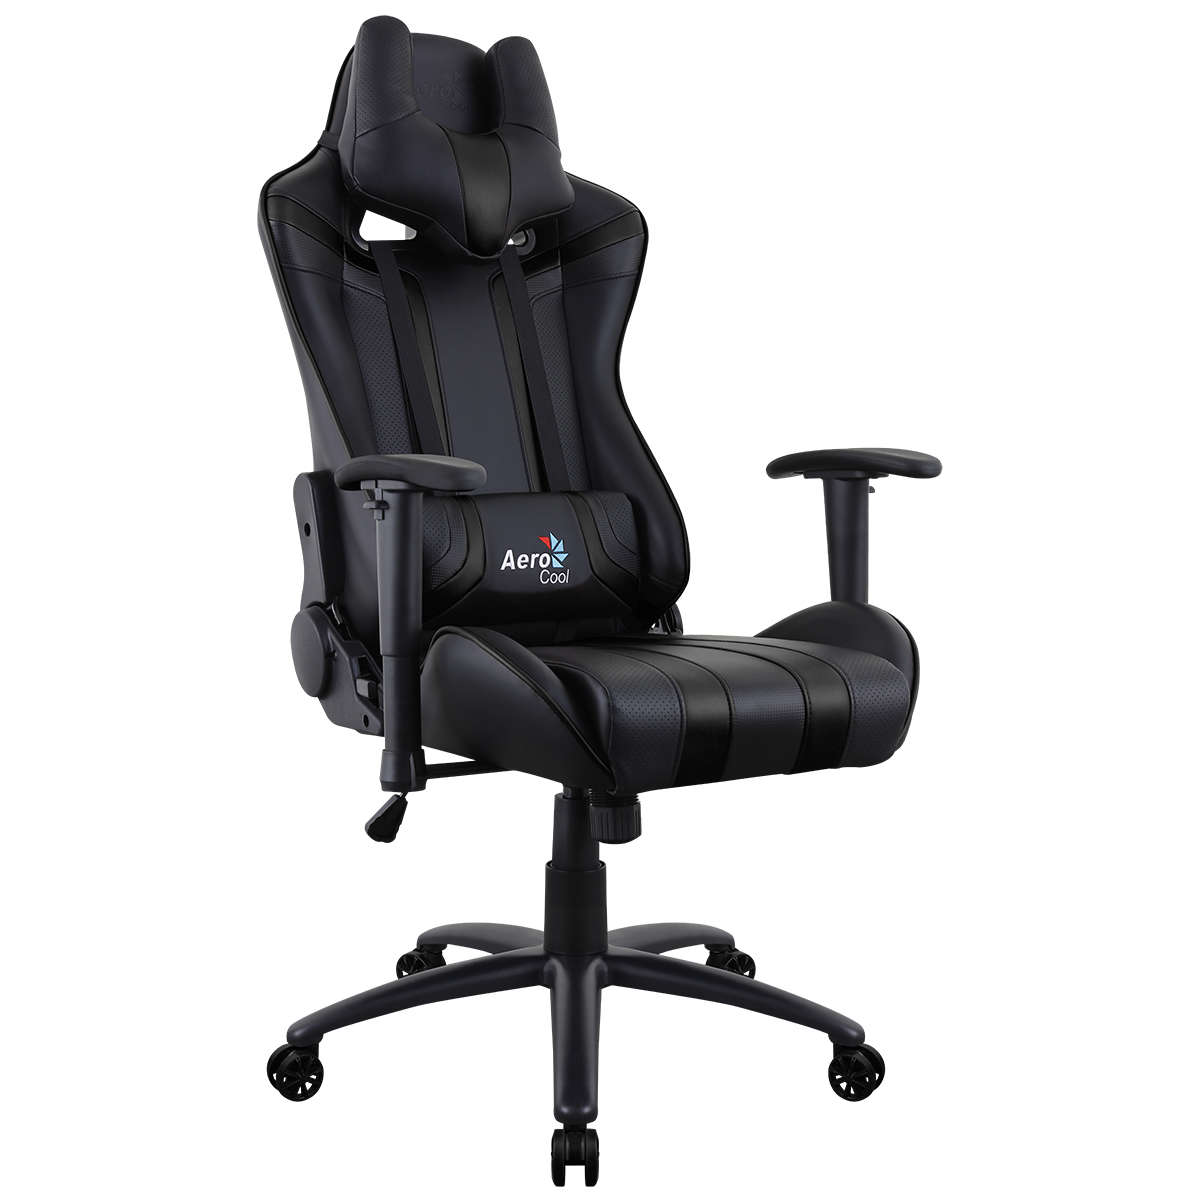 AC120 Air Gaming Chair -  Black